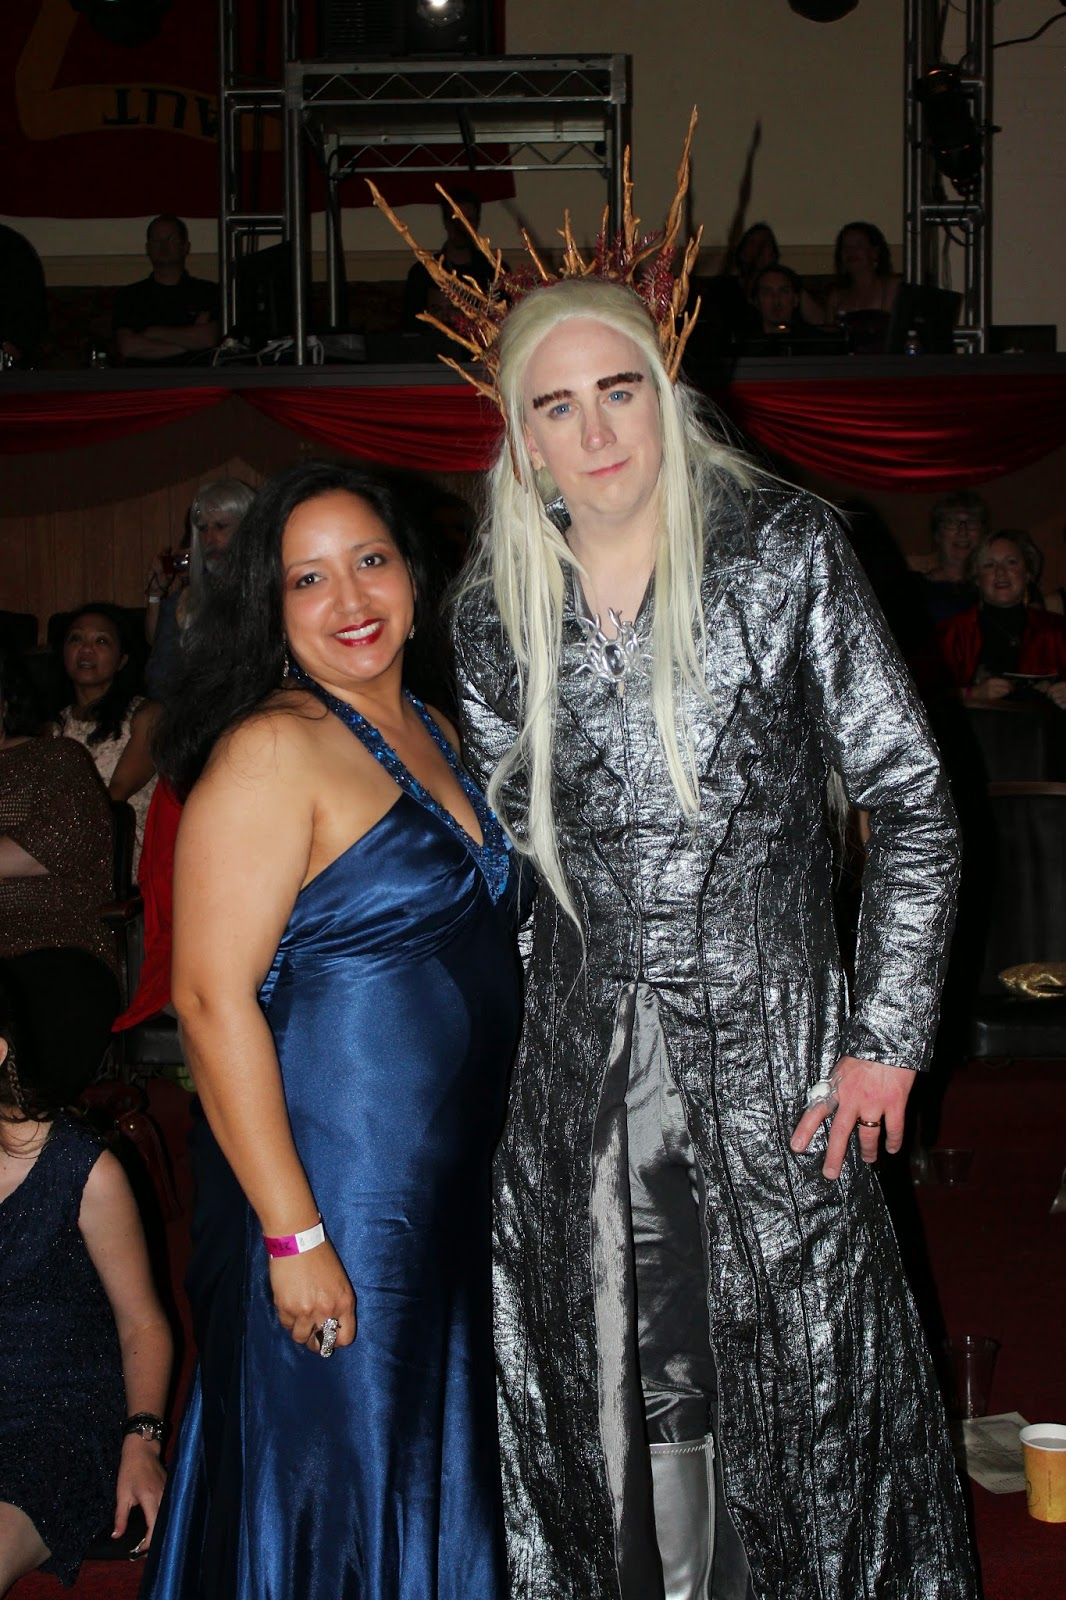 I had to get a picture taken with this amazing Thranduil cosplay - One Last Party